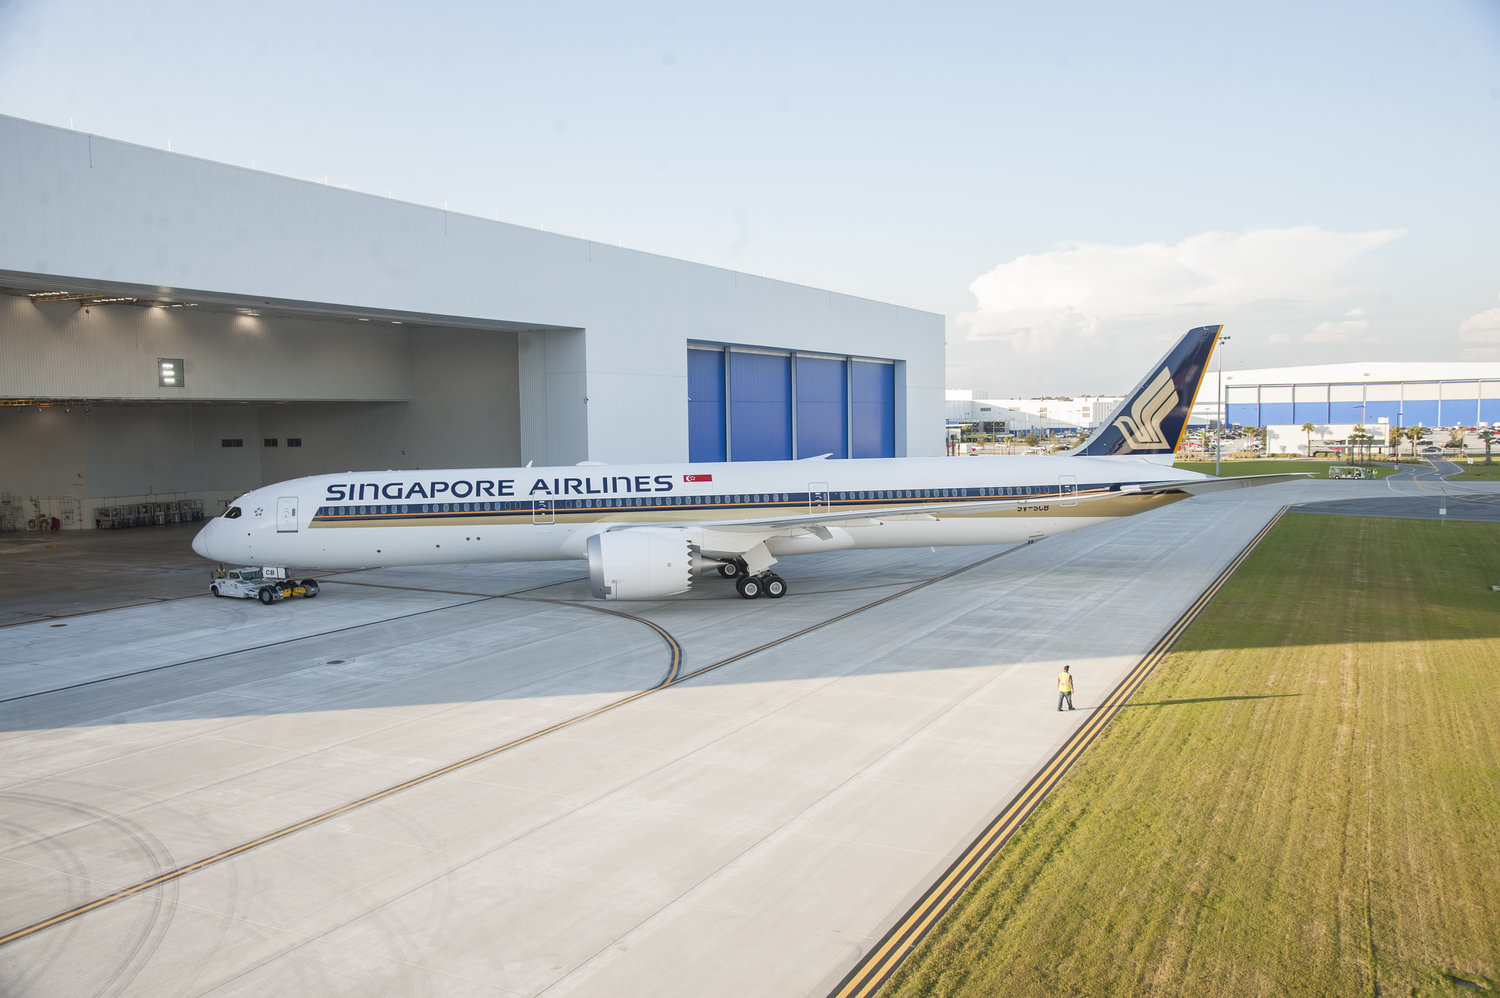 Singapore Airlines to debut 787-10 Dreamliner in May 2018 - First Official Route is Osaka (KIX)